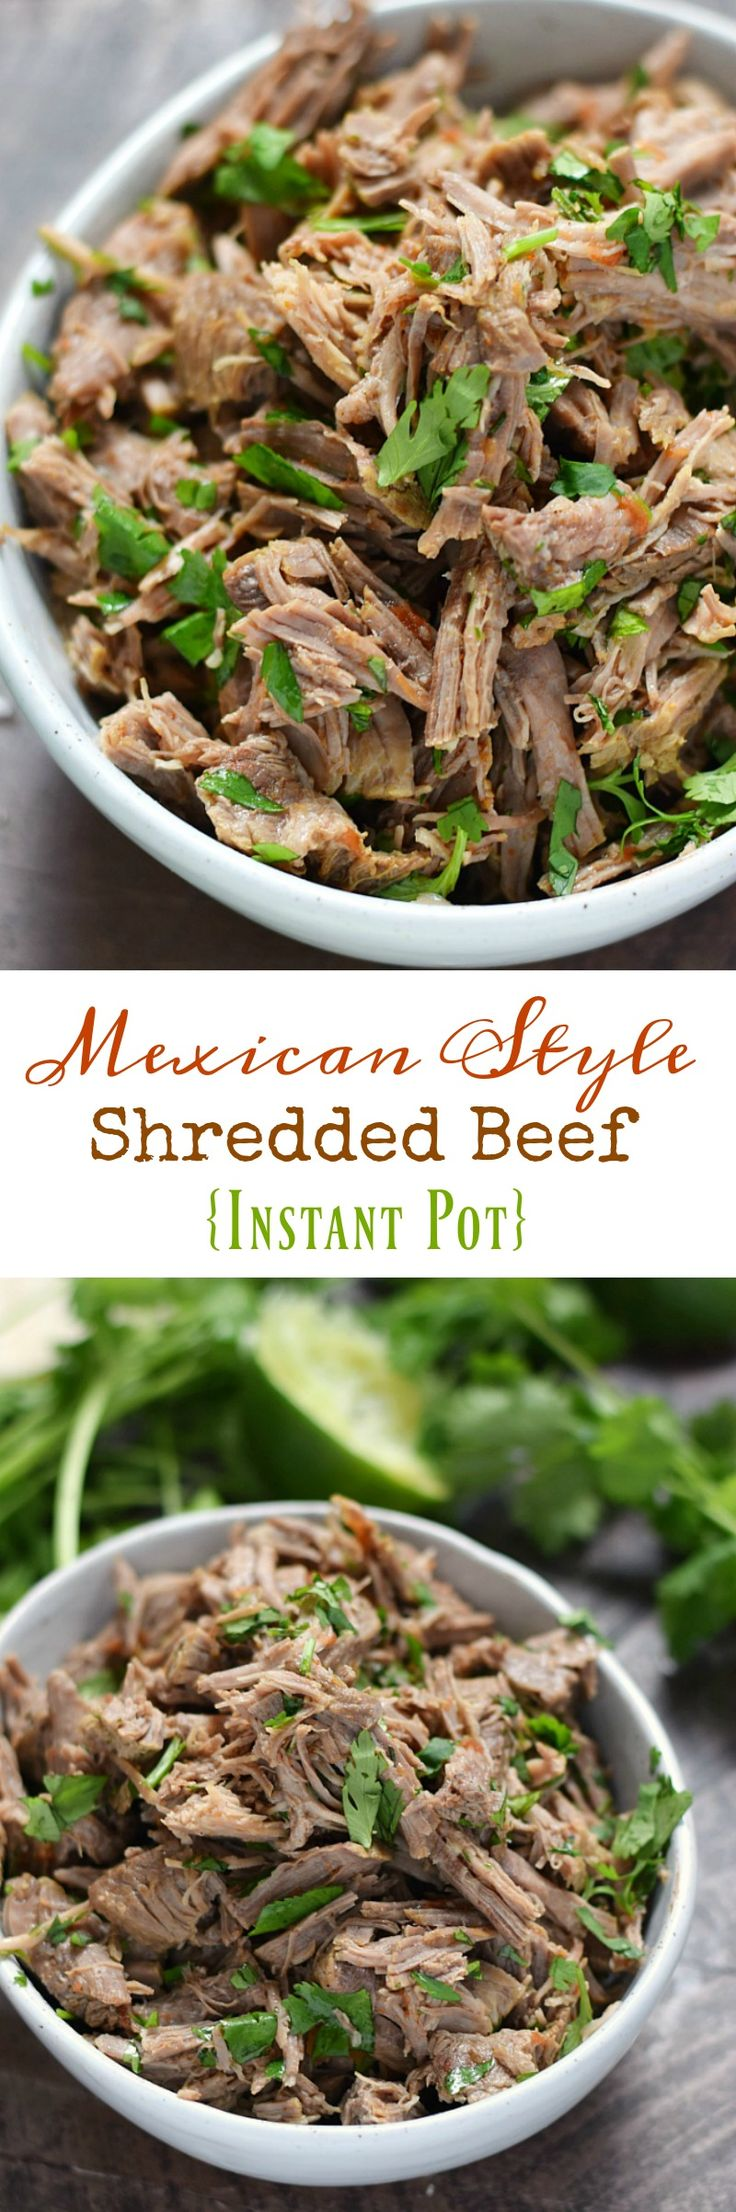 2577 best meat lovers best recipes images on pinterest casserole mexican style shredded beef instant pot lunch recipescrockpot forumfinder Gallery